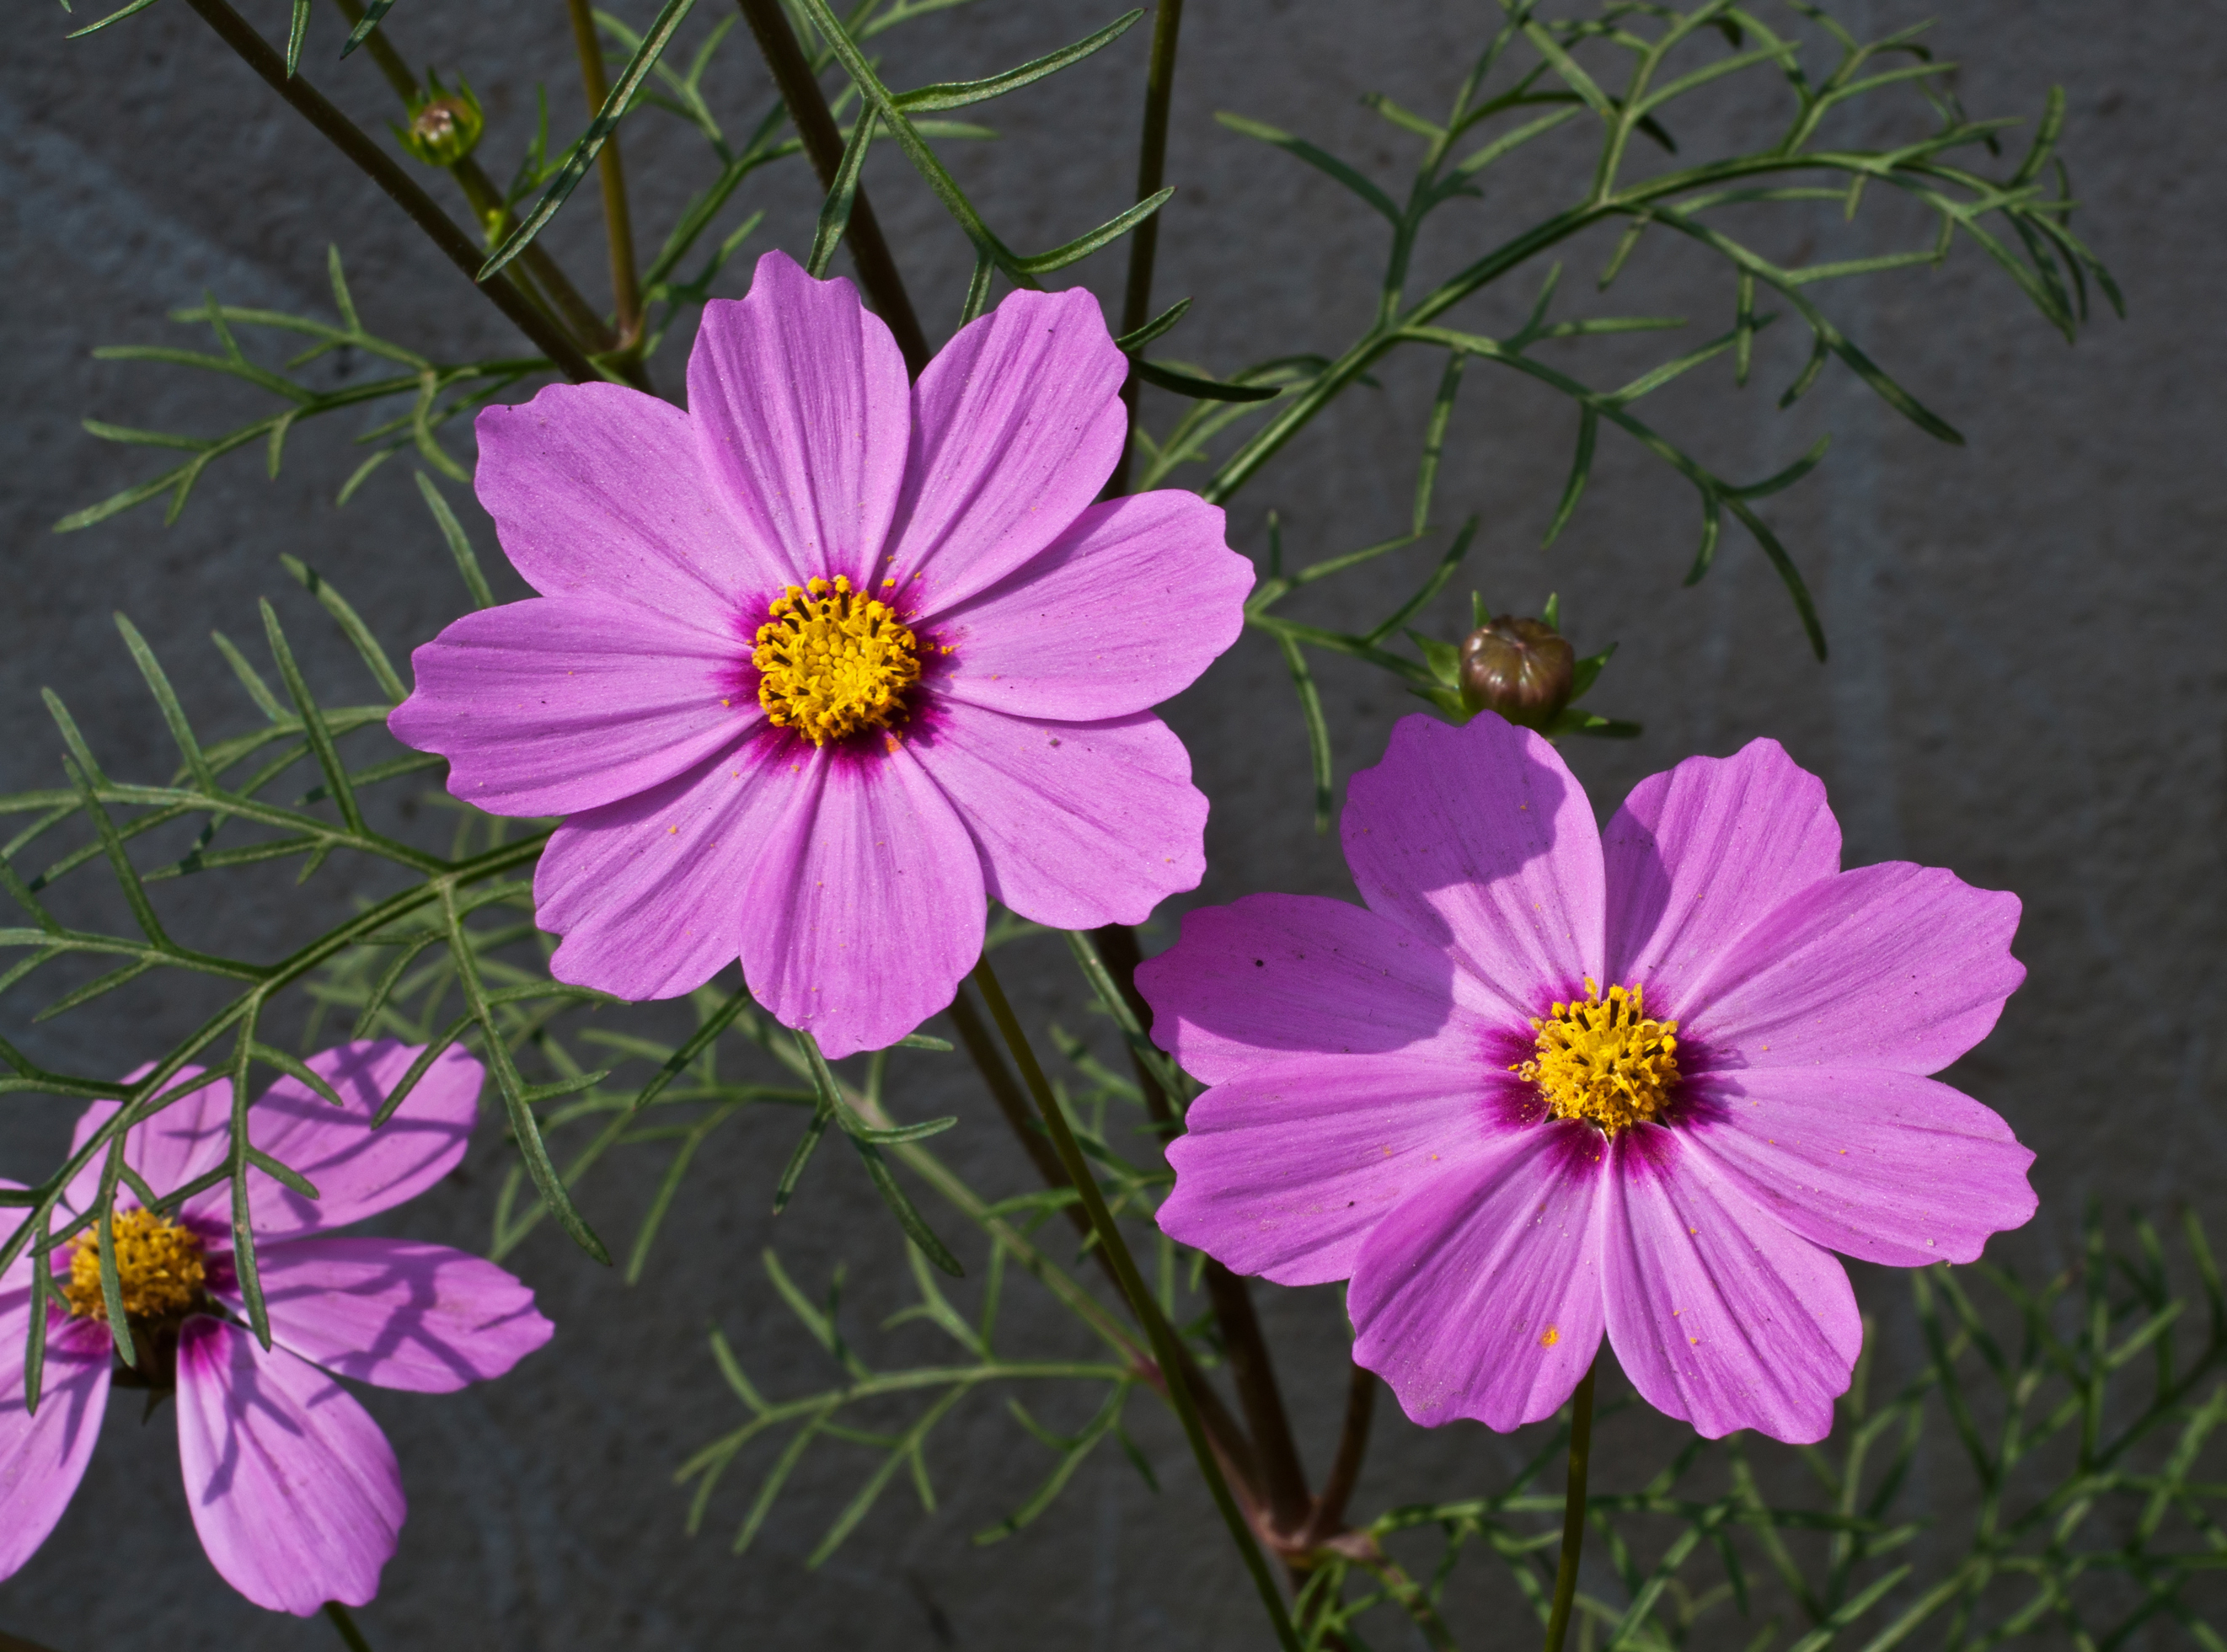 Cosmos_bipinnatus_pink,_Burdwan,_West_Bengal,_India_31_01_2013-1